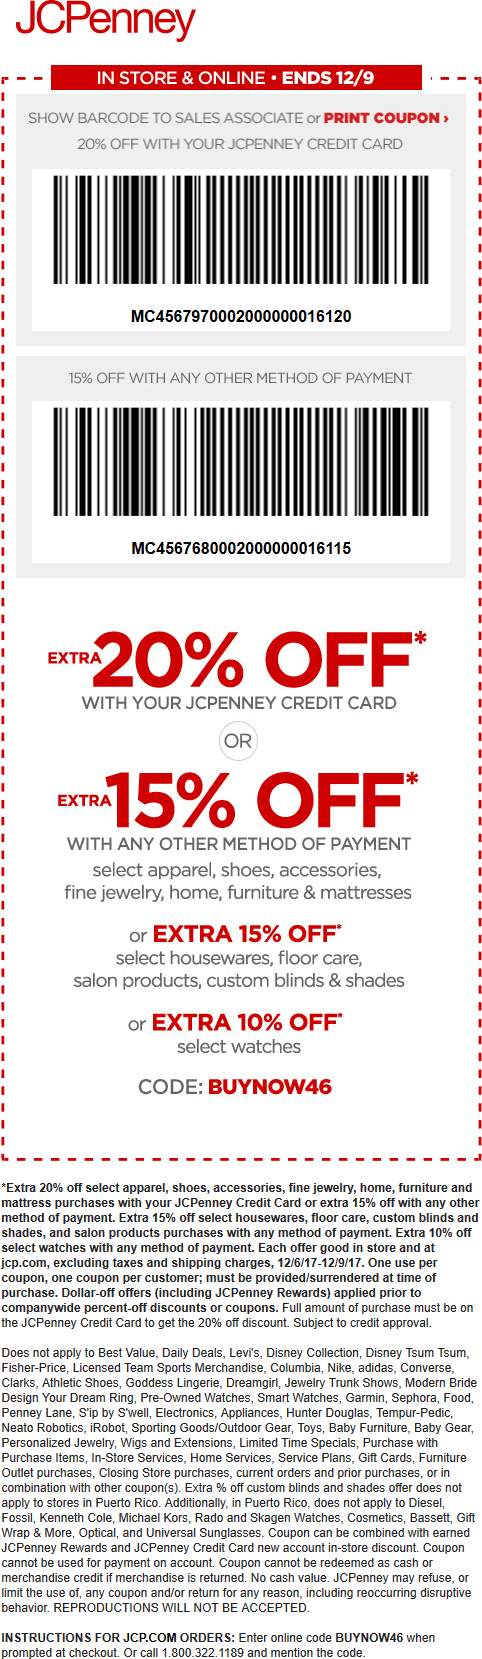 JCPenney.com Promo Coupon 15% off at JCPenney, or online via promo code BUYNOW46